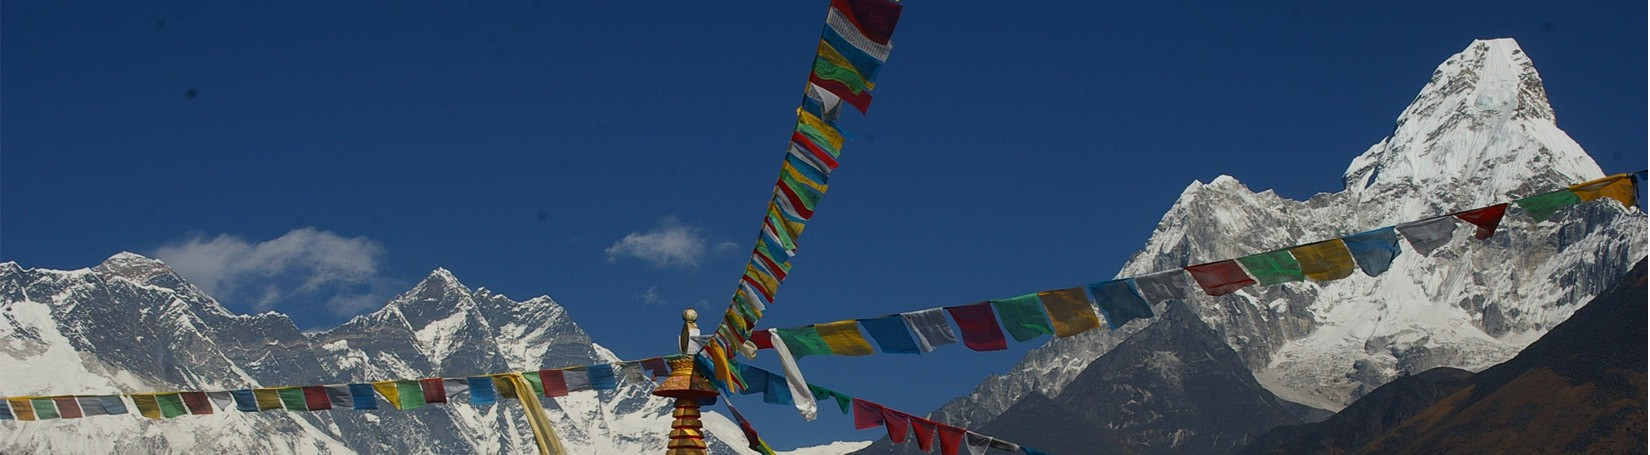 Mount Everest, Nuptse and Amadablam view from Tengboche